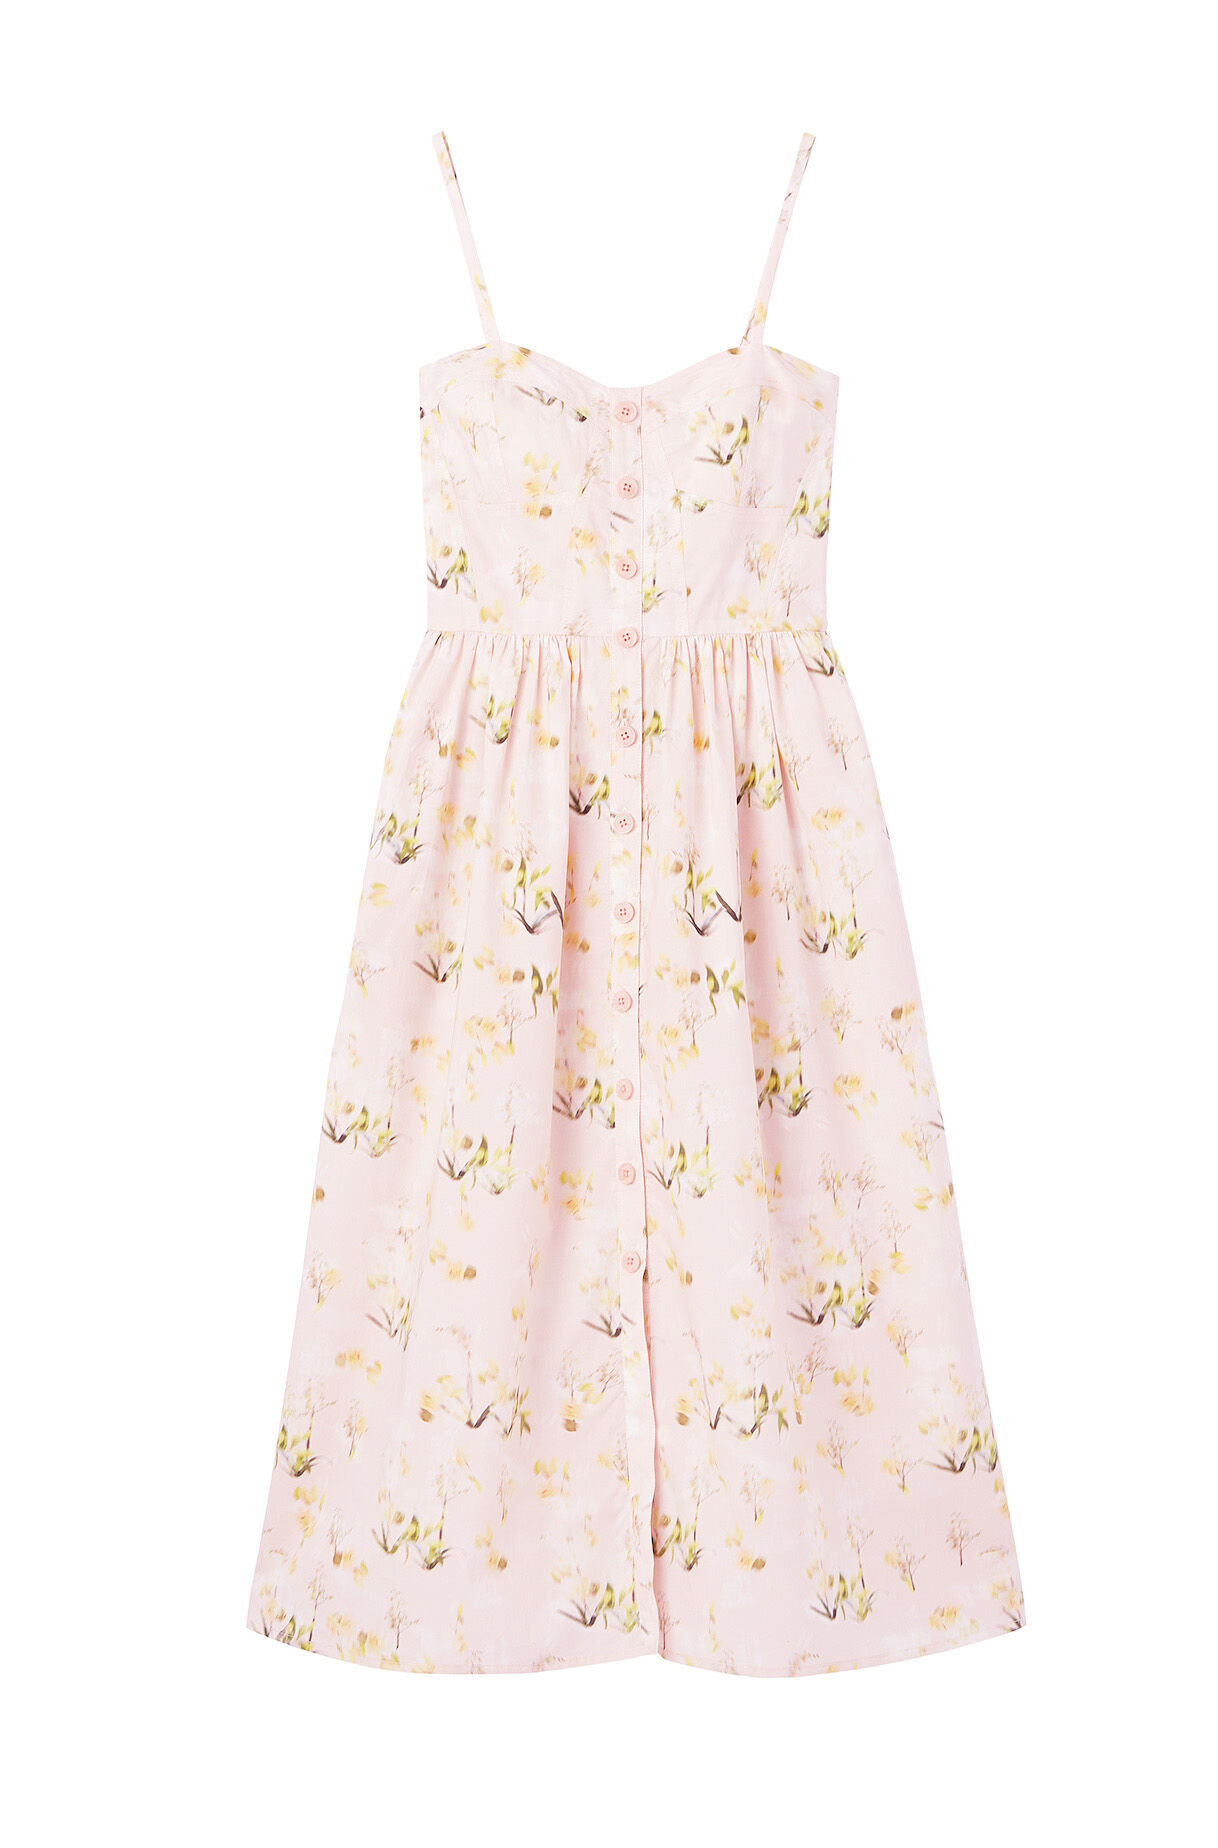 04a25cafc4ad6 Firefly Floral Dress · Firefly Floral Dress ...